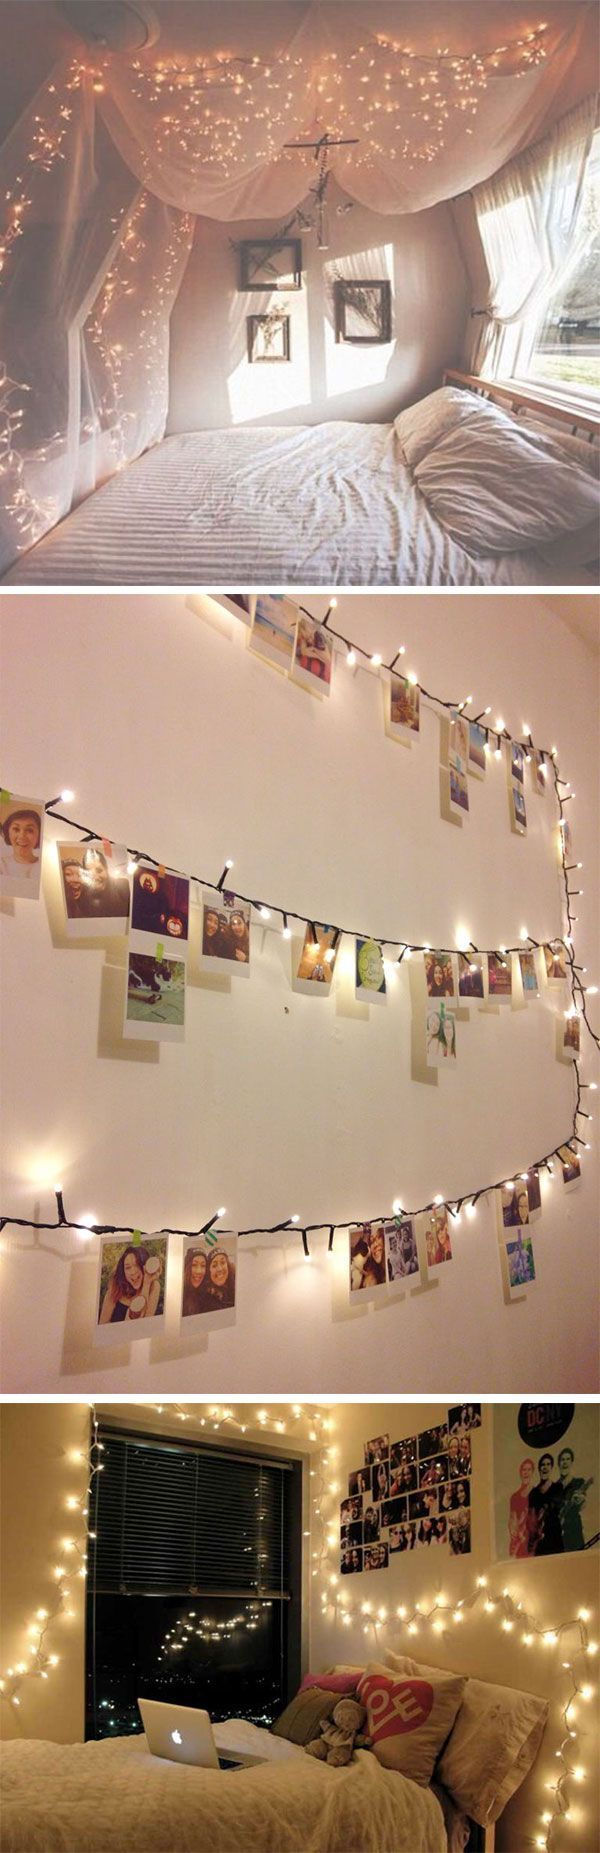 Bedroom pictures and ideas - 13 Ways To Use Fairy Lights To Make Your Home Look Magical